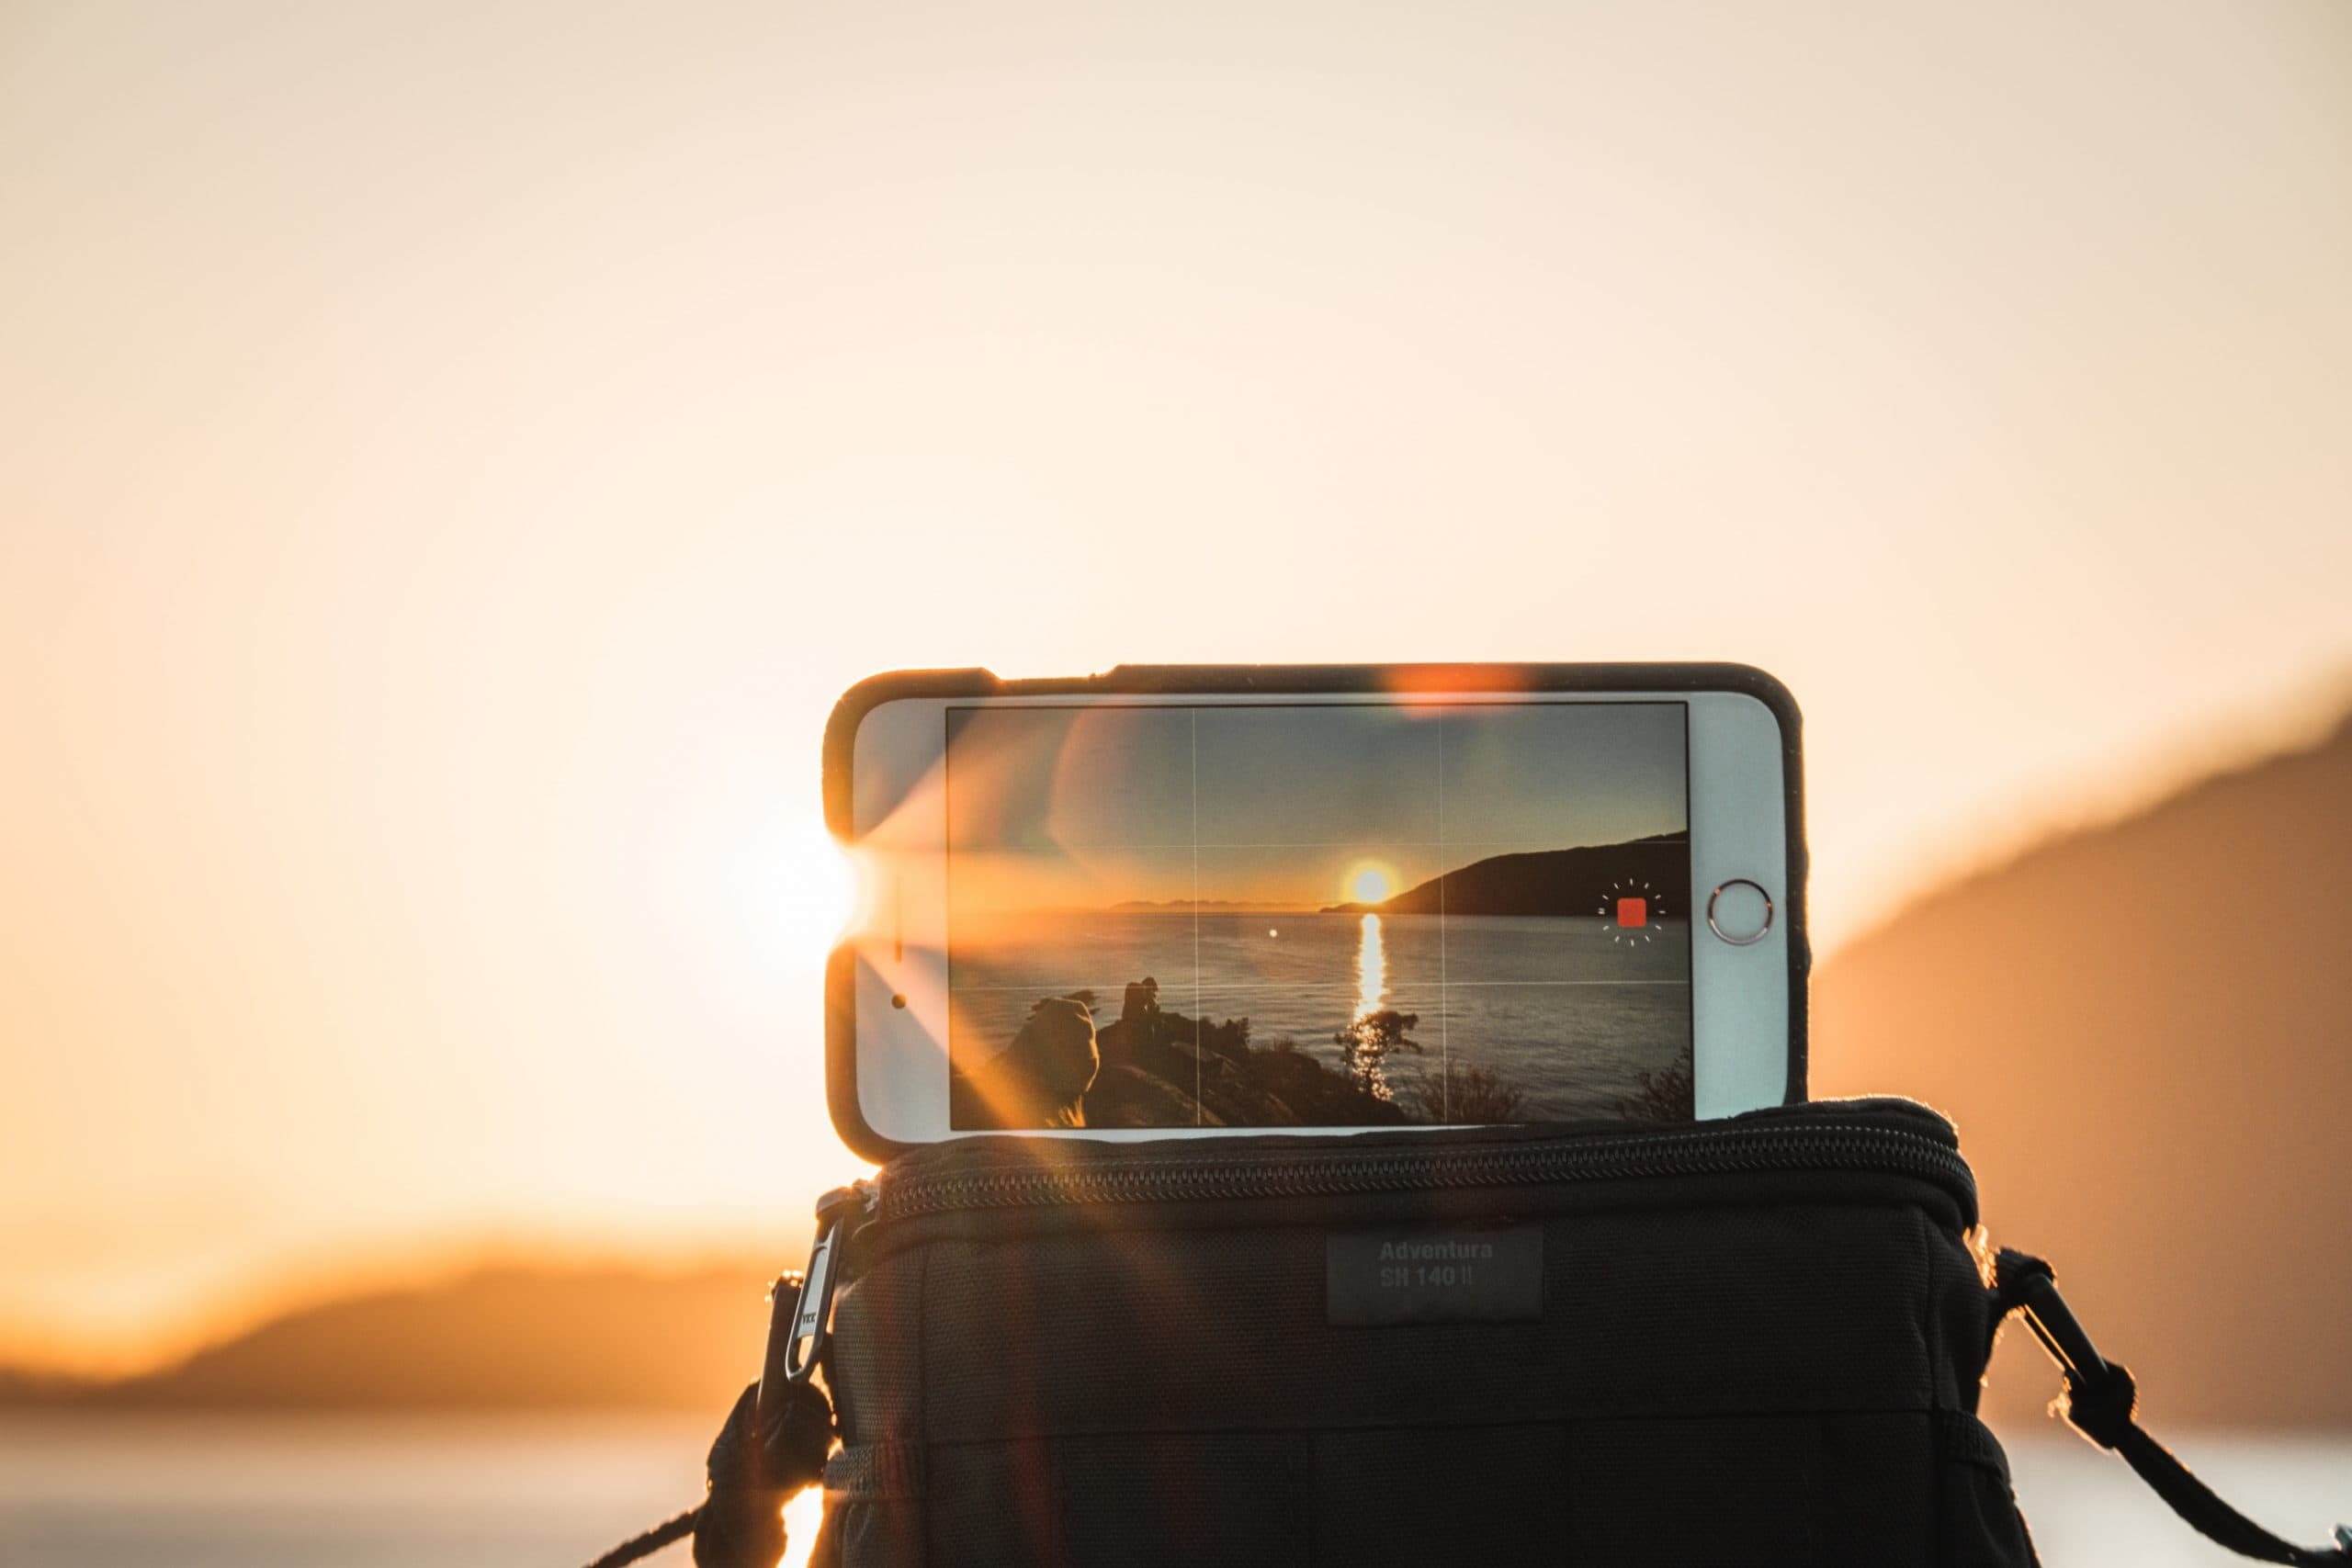 The Best Filmmaking Blogs in 2021 - An image of an iPhone filming a sunset